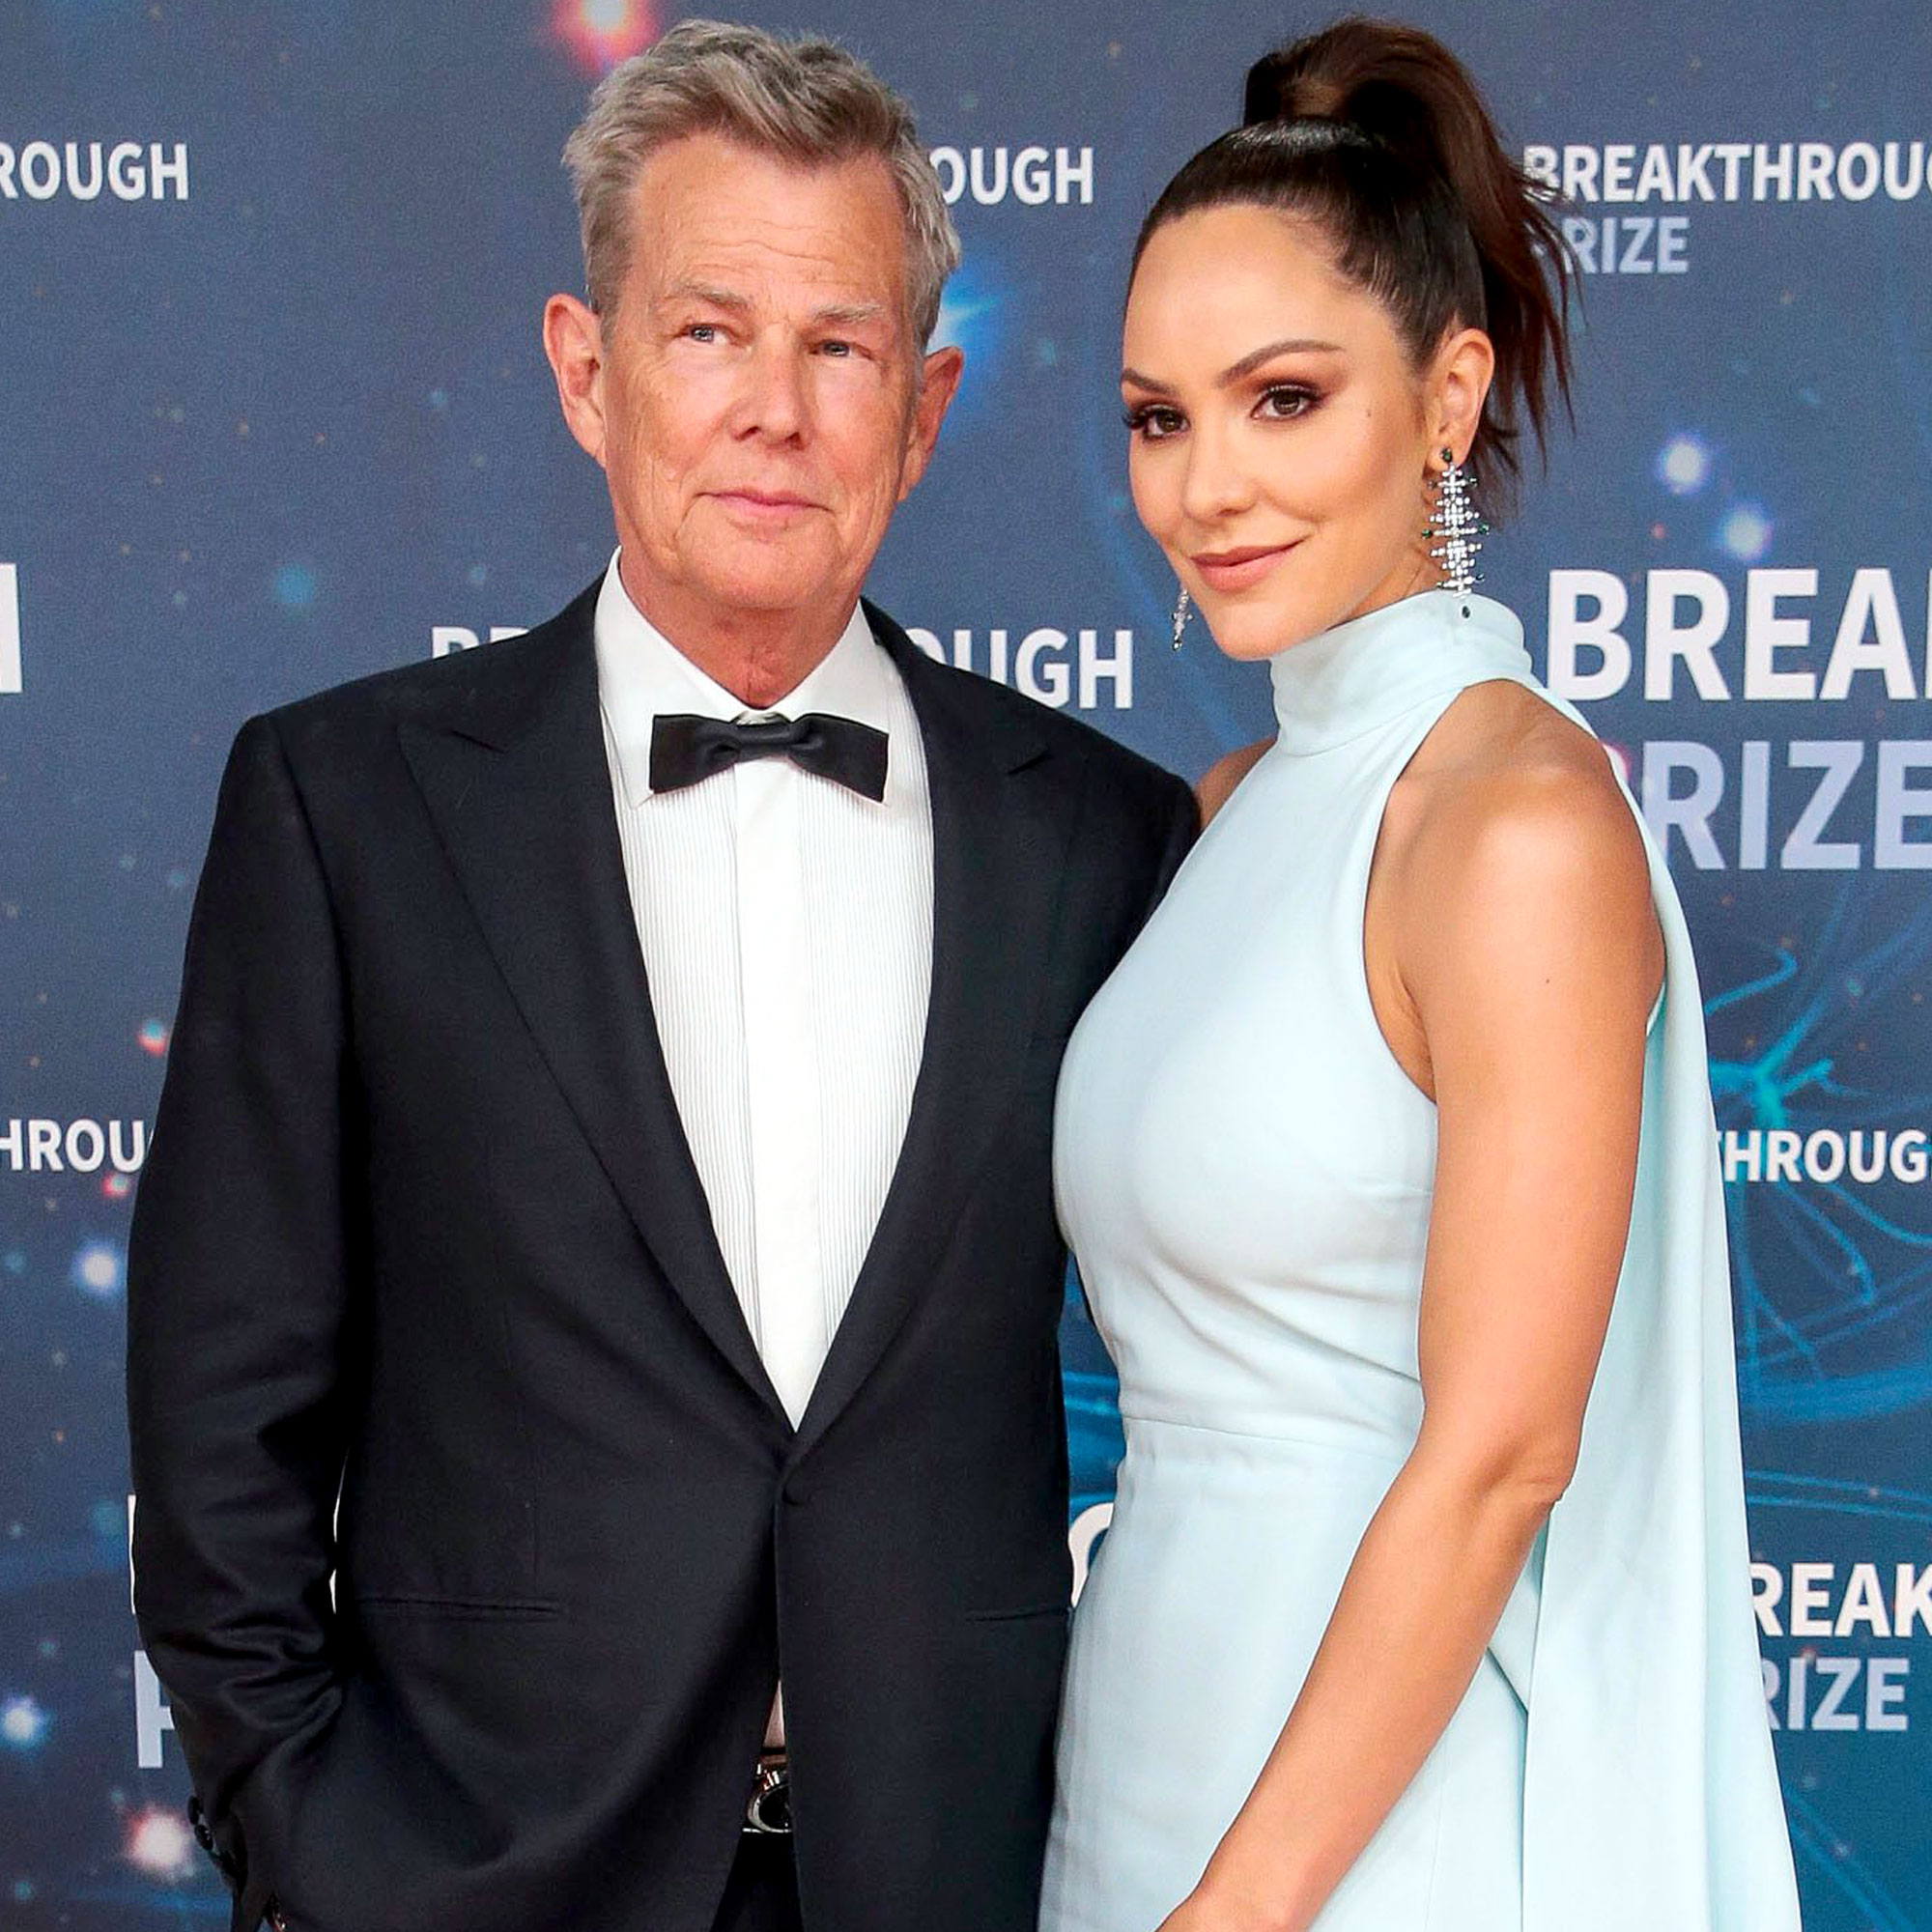 Katharine Mcphee Reveals What She Loves Most About David Foster